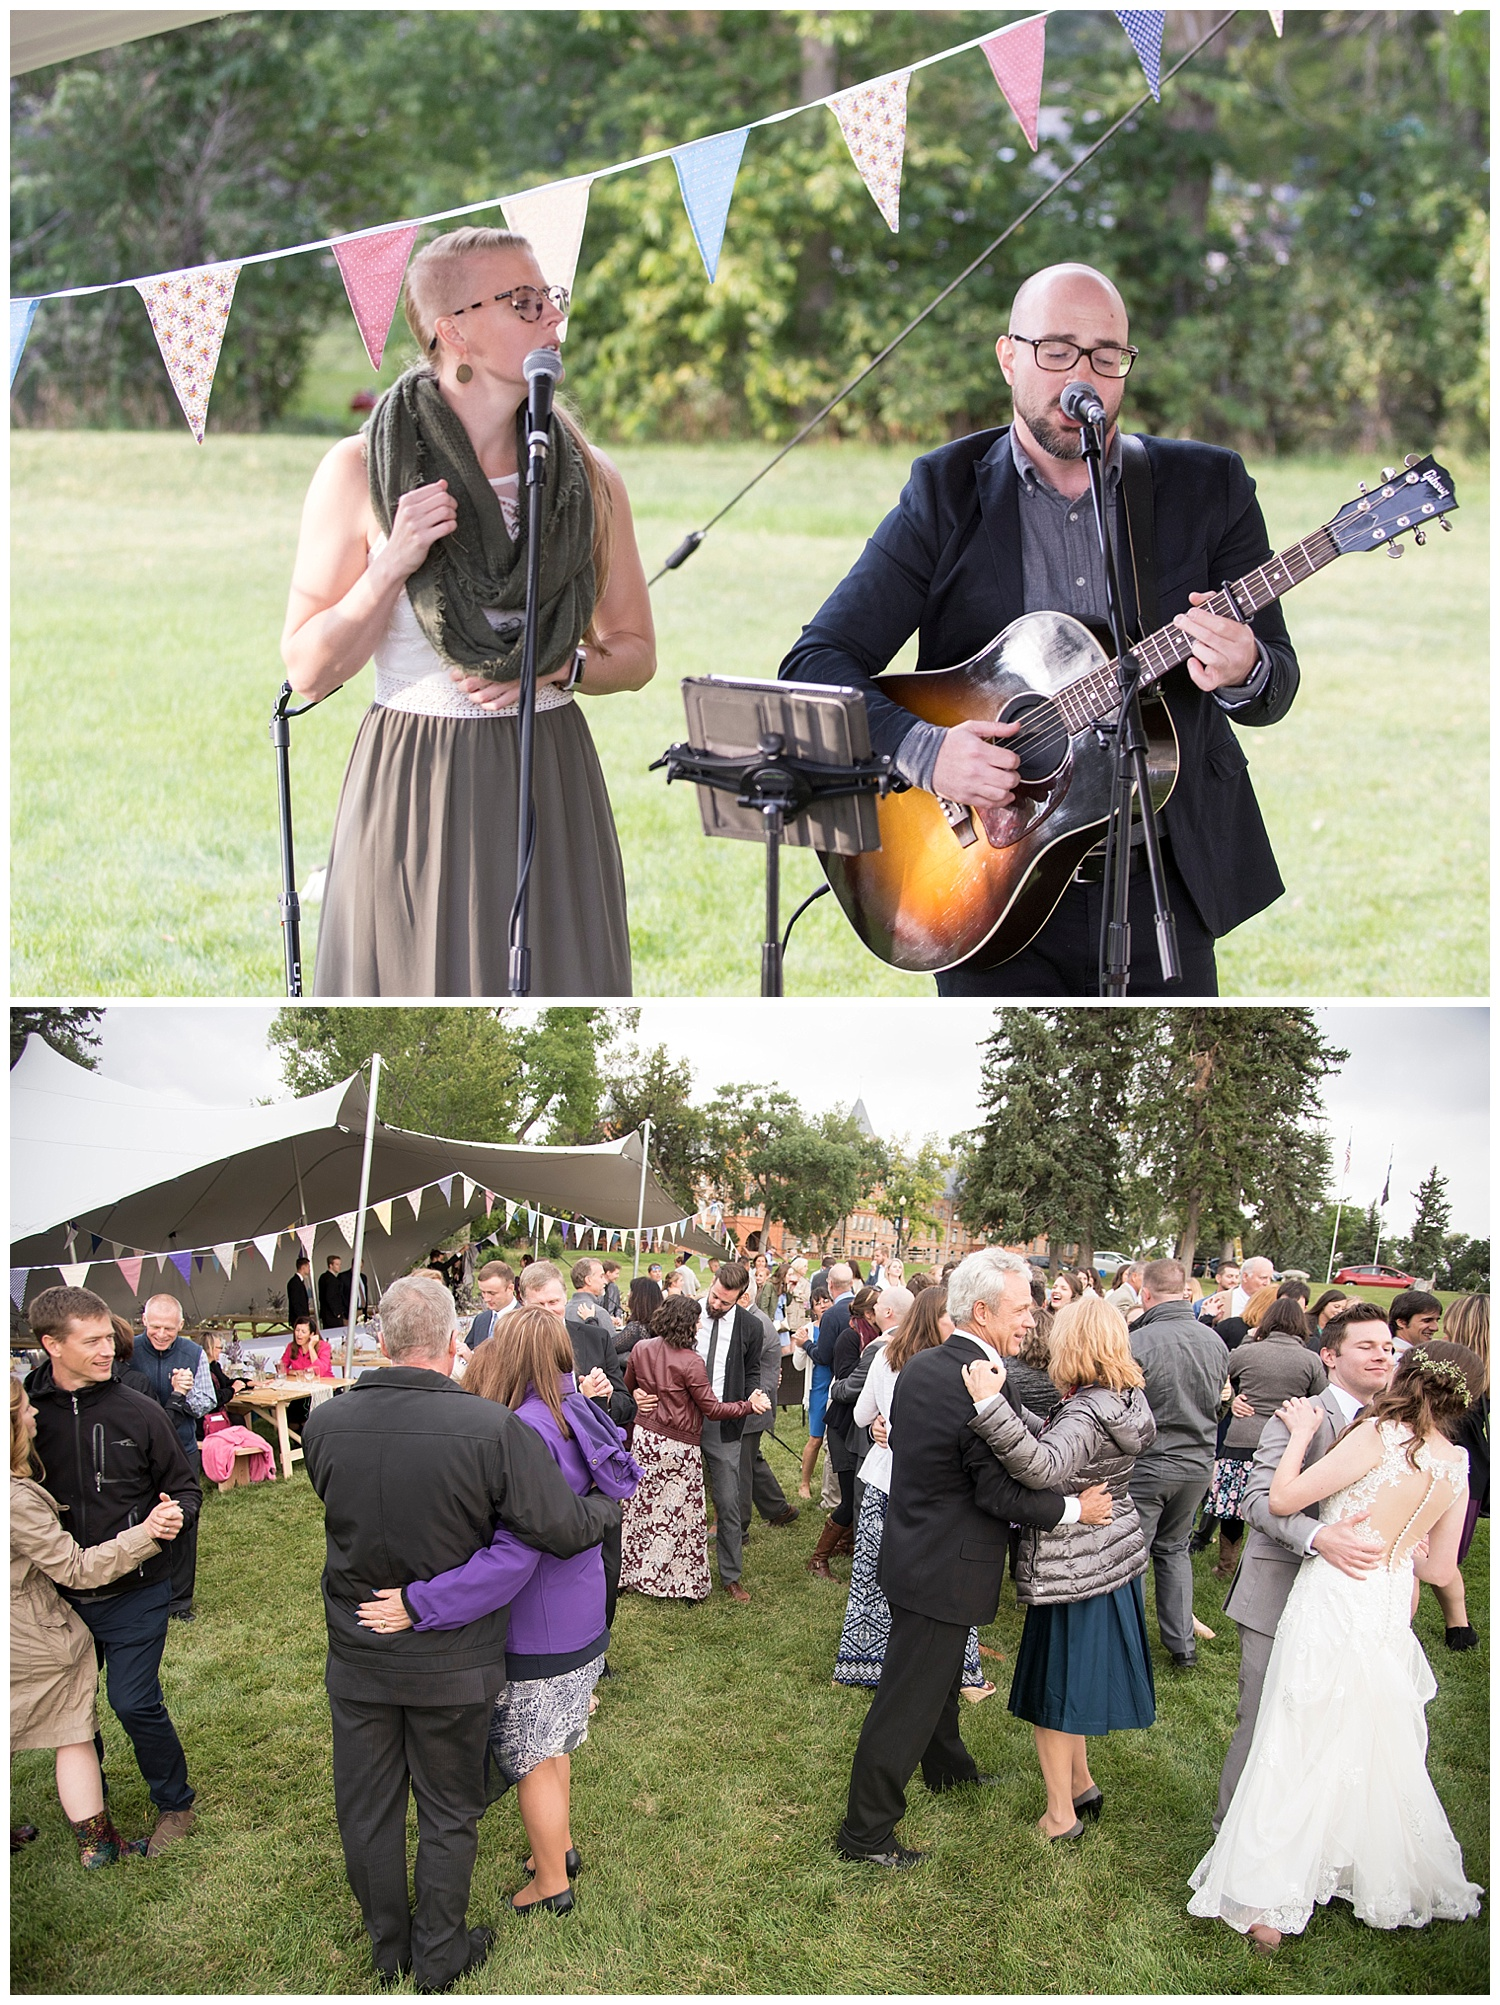 Live Music and Dancing in the Grass | Bethany and Jono's Intimate DIY Wedding | Colorado Springs Wedding Photographer | Farm Wedding Photographer | Apollo Fields Wedding Photojournalism